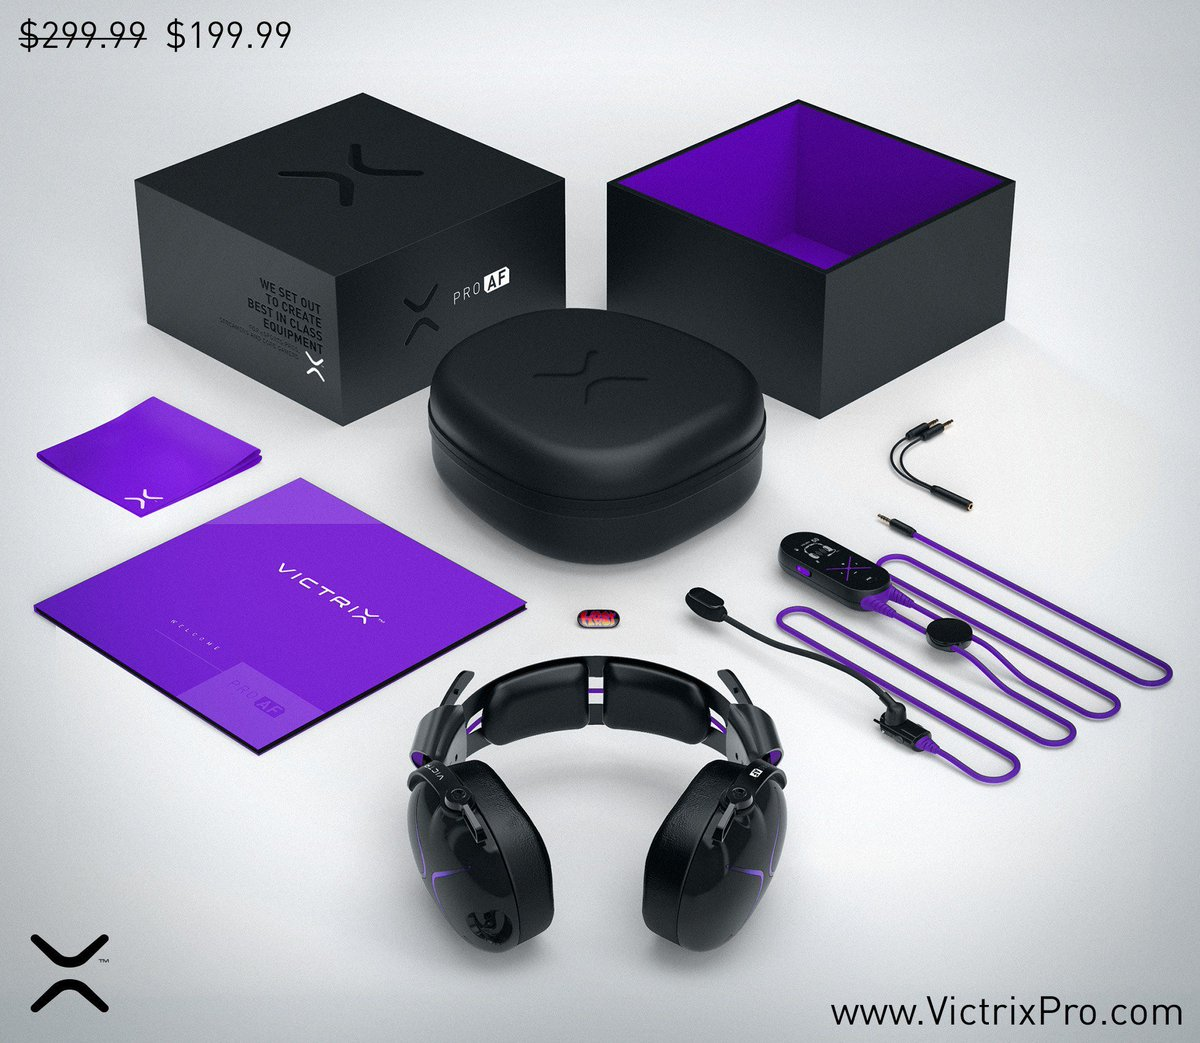 WE ARE OPEN!!! You can now preorder your Victrix Pro AF at victrixpro.com. Preorders get $100 off while supplies last. (Normally priced at $300)